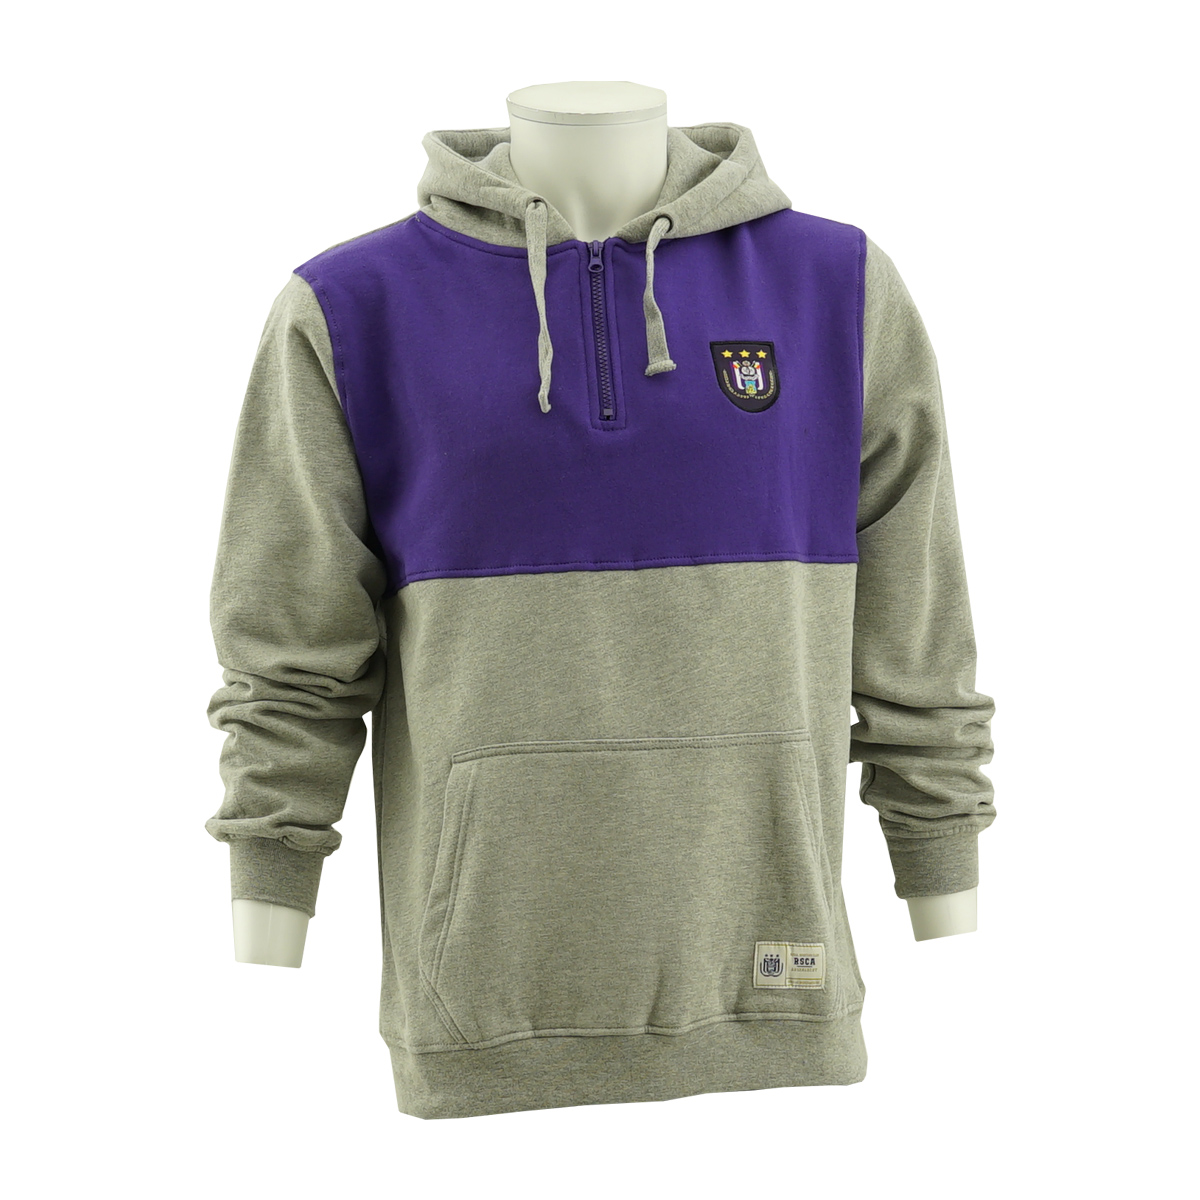 RSCA Sweater Met Kap Heren Block